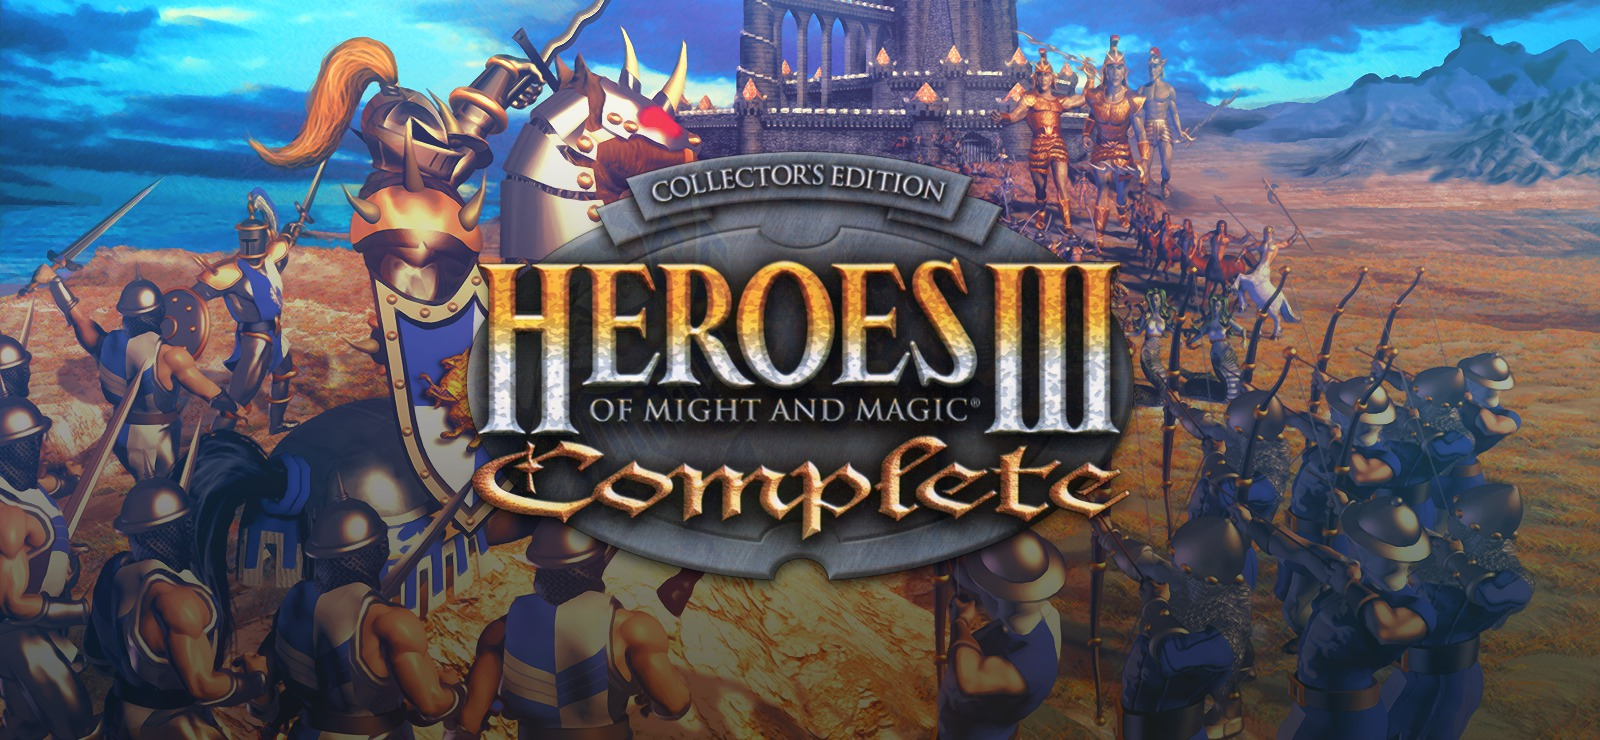 Heroes Of Might And Magic III High Quality Background on Wallpapers Vista